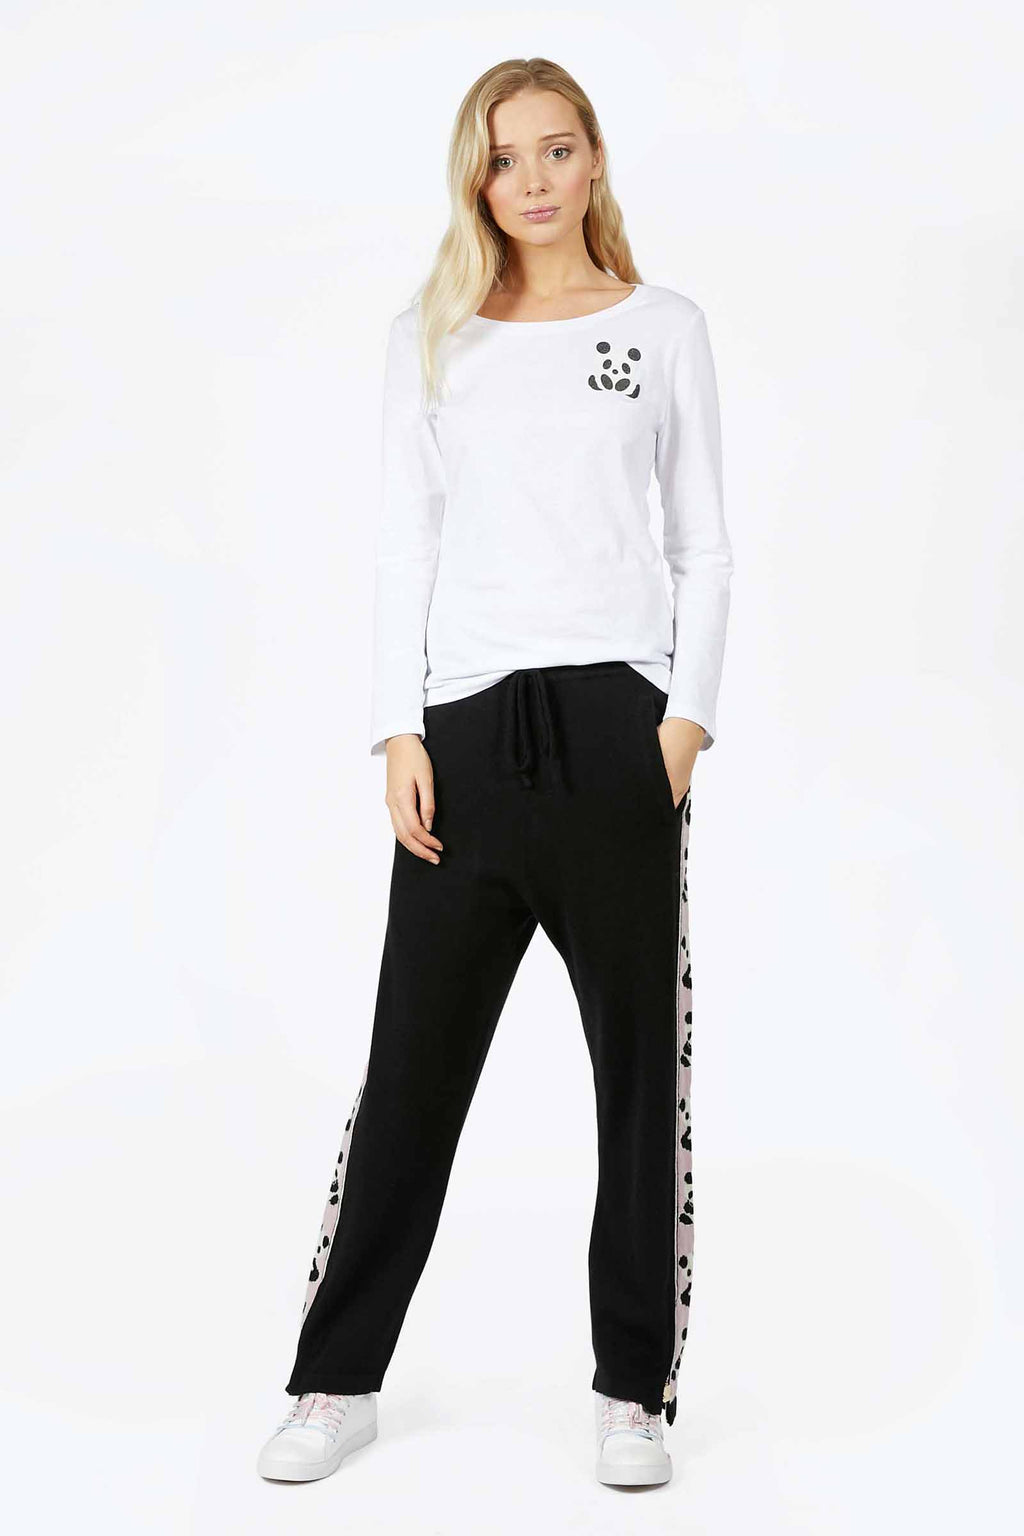 Panda Cashmere Zip Track Pants (2 colors)